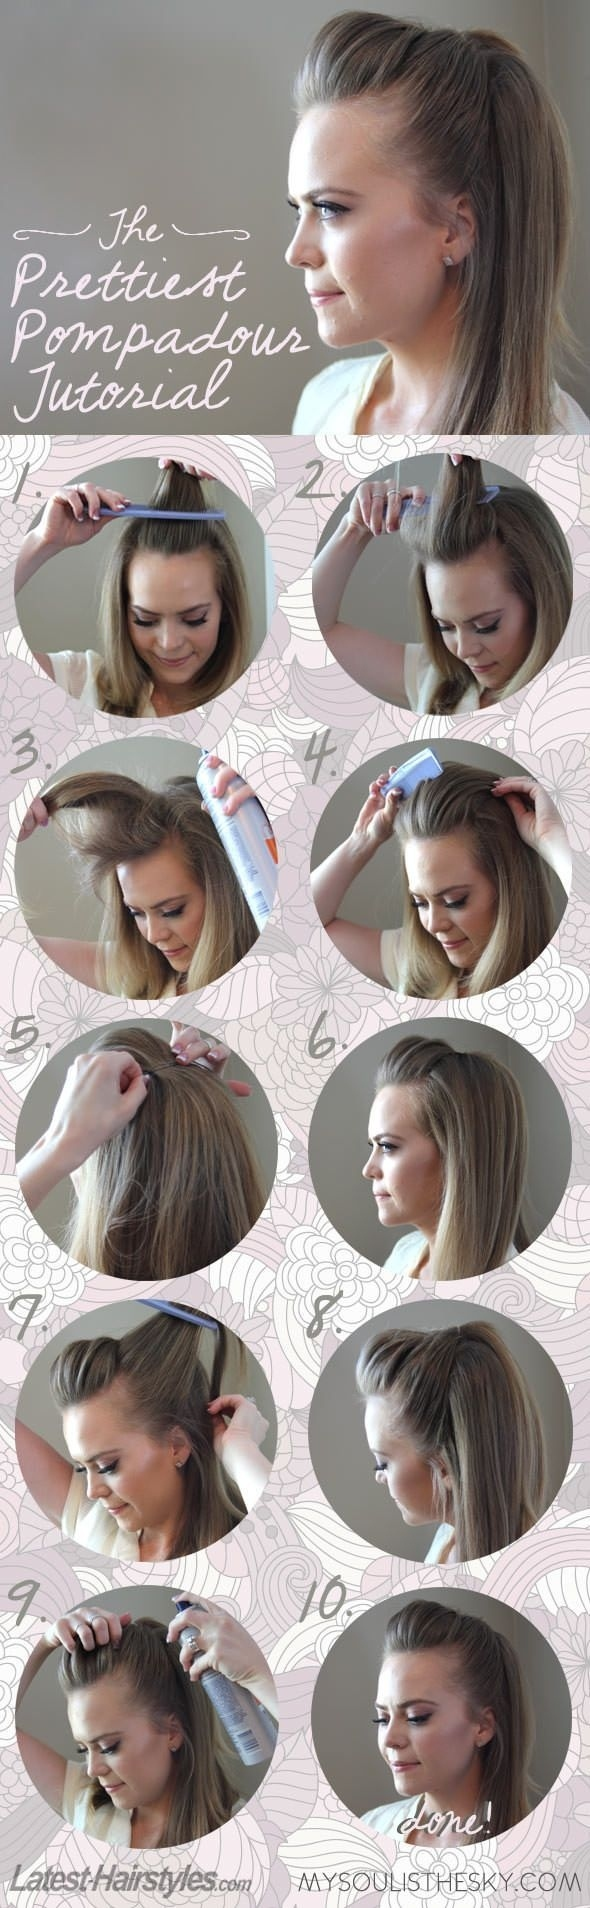 Fabulous 23 Five Minute Hairstyles For Busy Mornings Short Hairstyles Gunalazisus